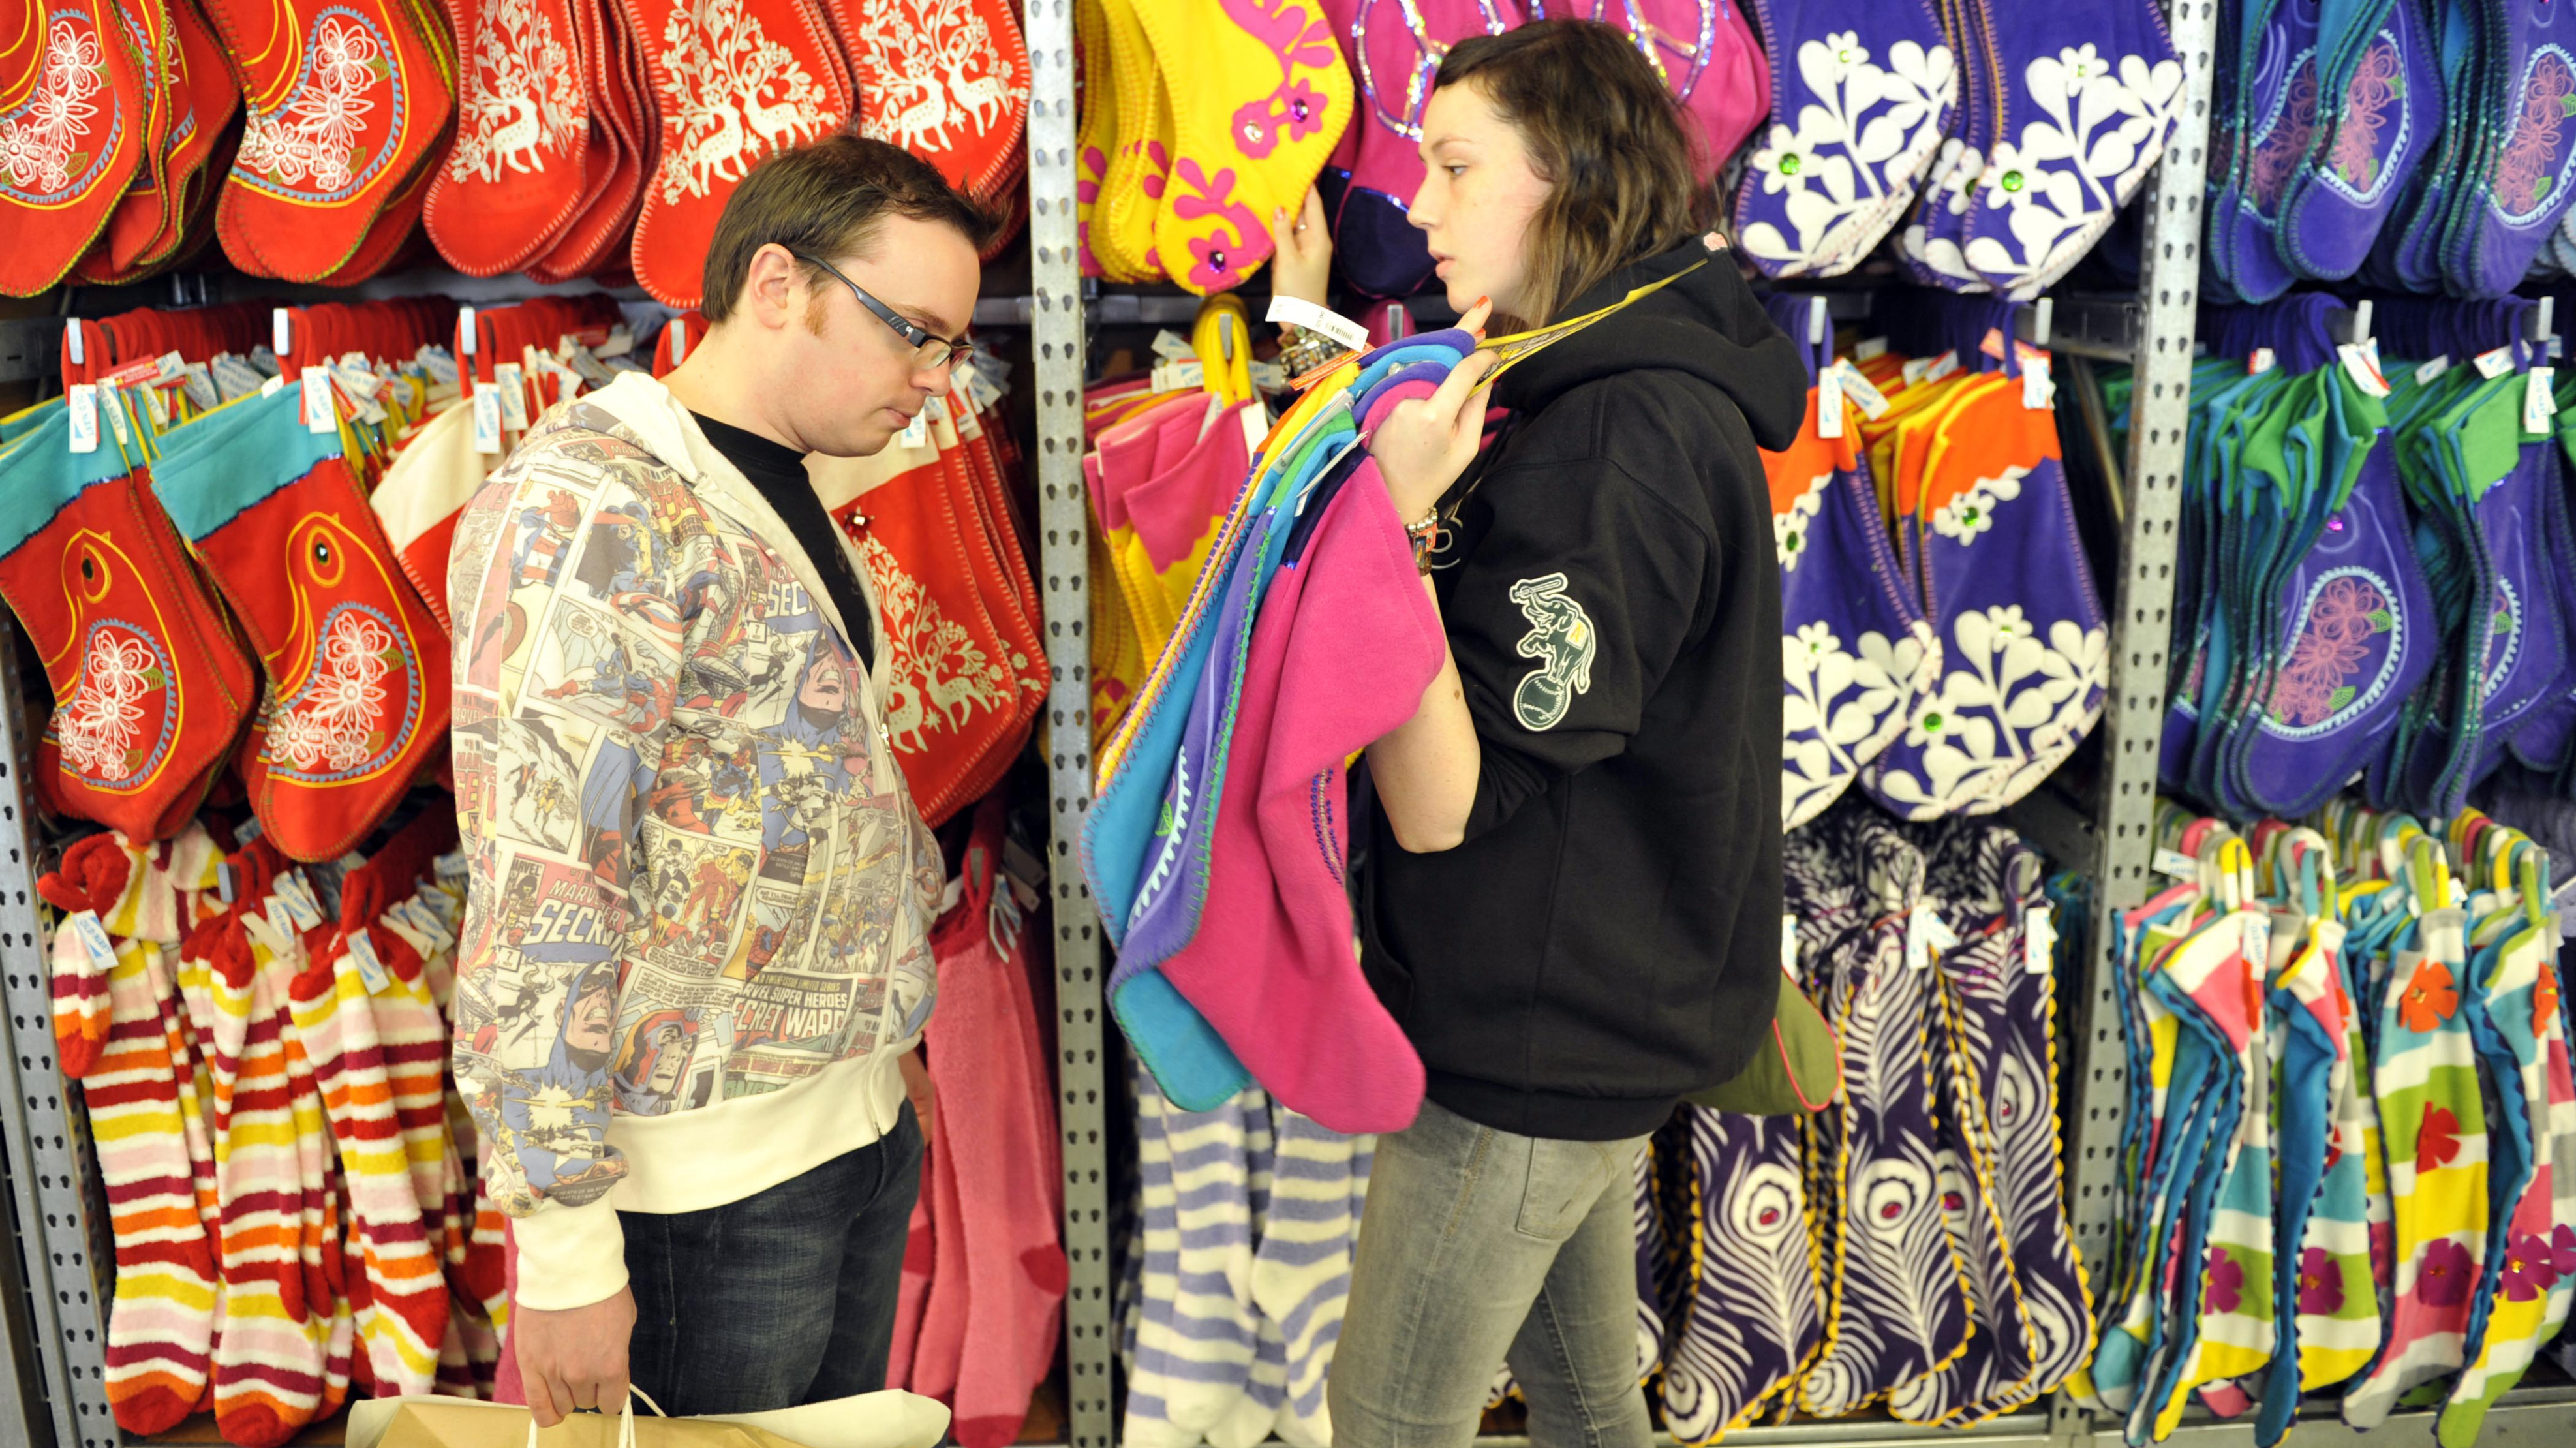 Matthew Day, left, and Esther West, both on vacation from Ireland, stock up on stockings during the Old Navy Thanksgiving sale in San Francisco, Thursday, Nov. 26, 2009. (AP Photo/Russel A. Daniels)